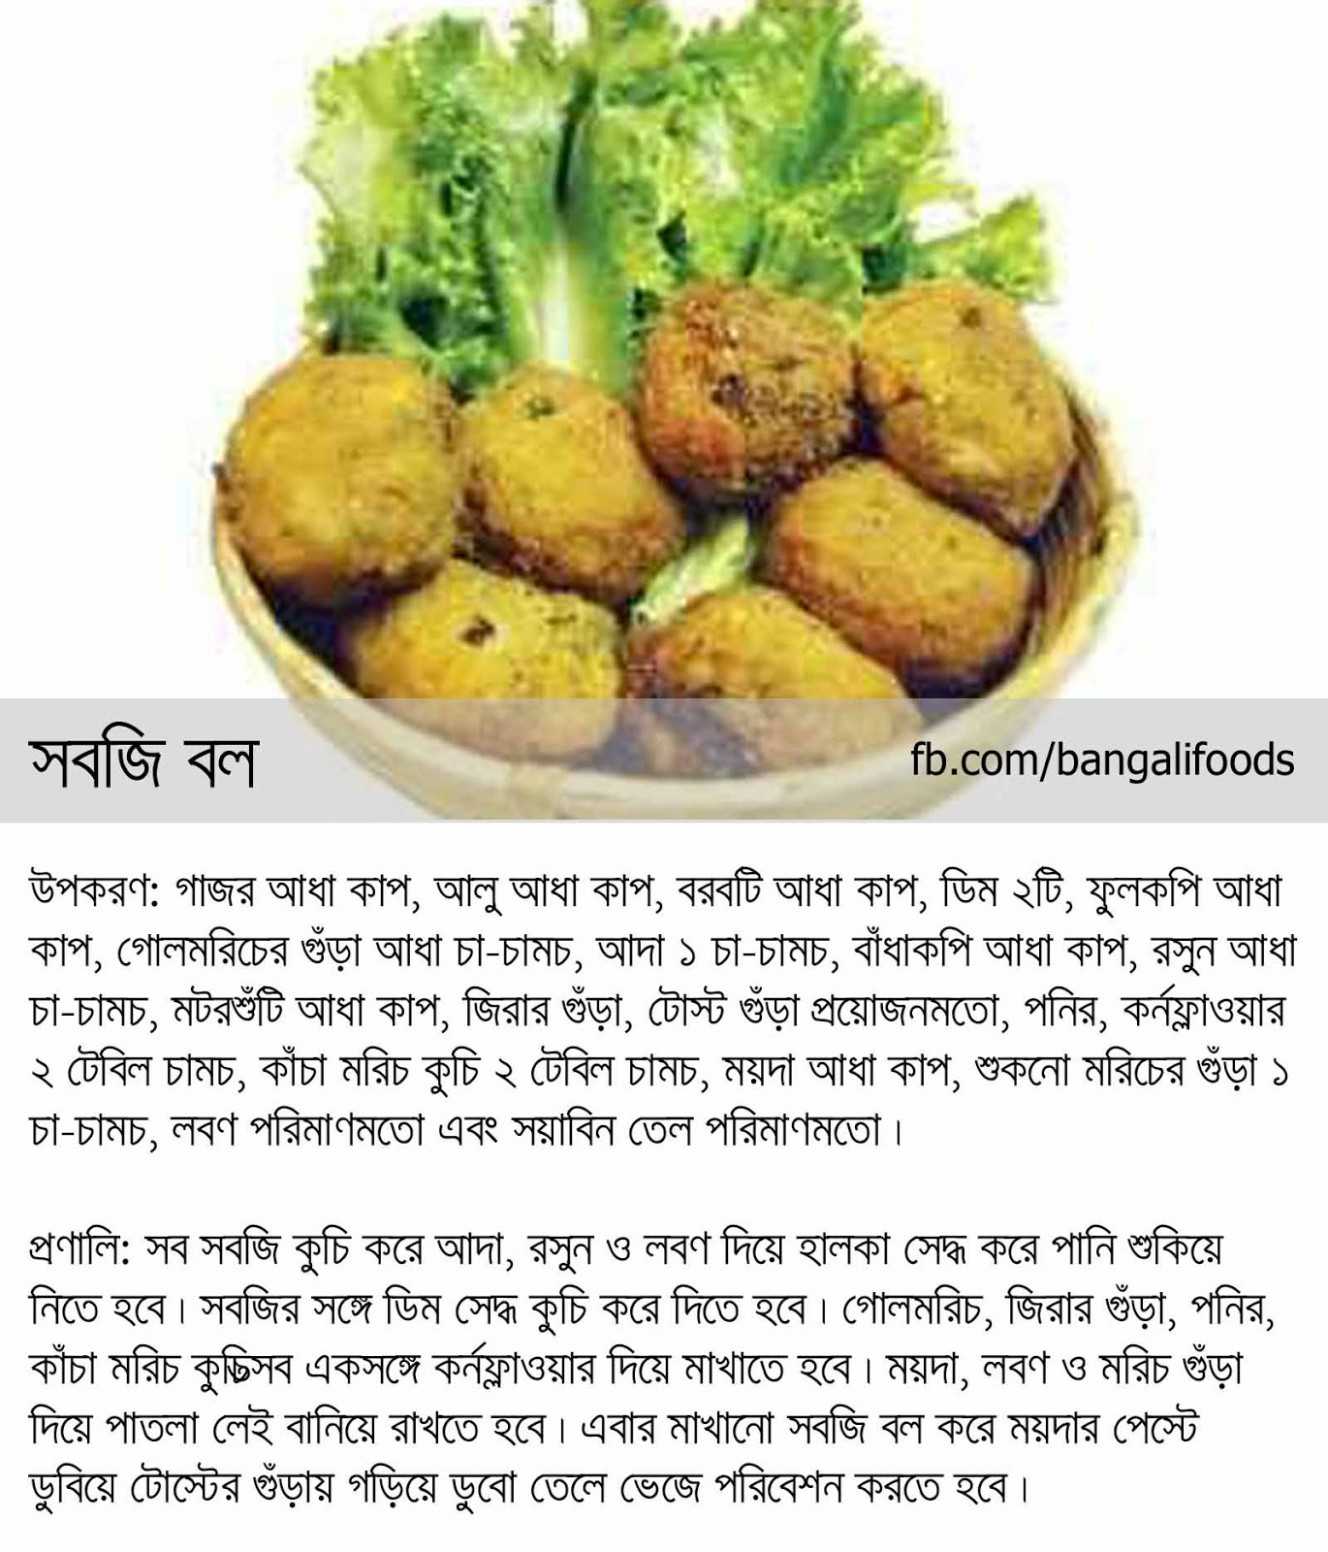 Bangali Foods: Snack food recipes in Bengali - chicken recipes bengali